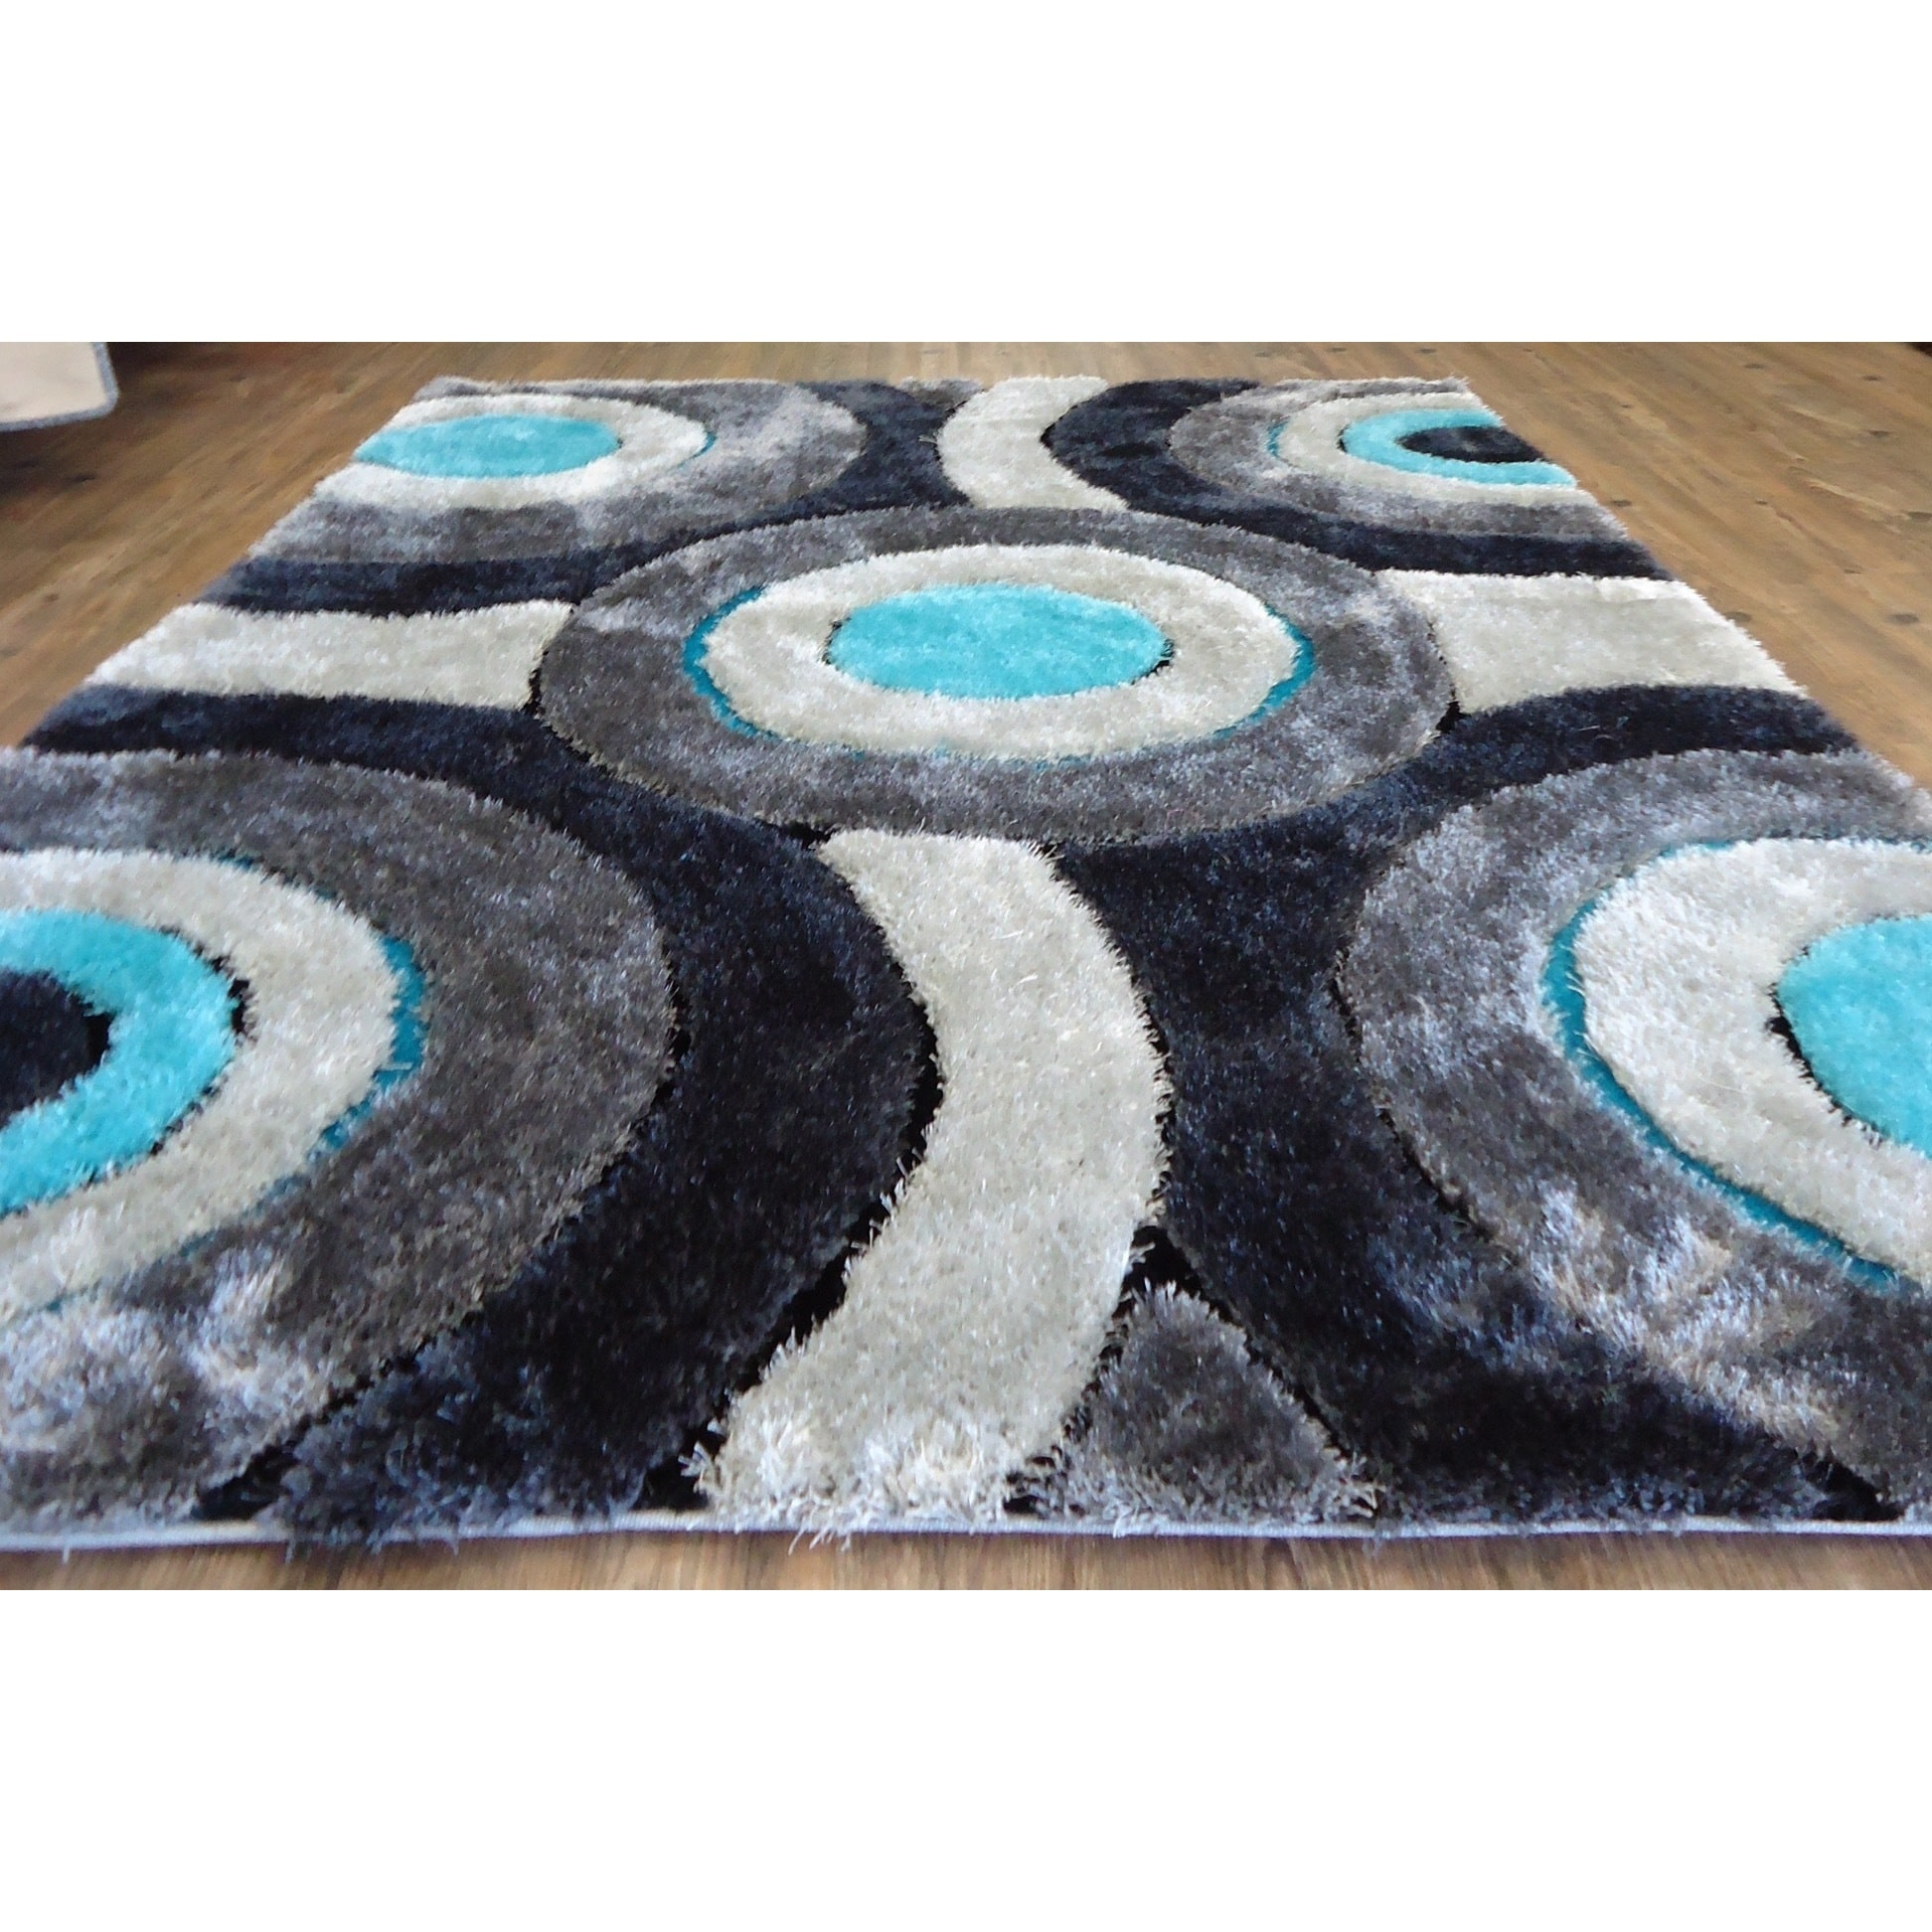 Shop silver gray turquoise and black circular modern hand tufted shag area rug 5 x 7 on sale free shipping today overstock 12611659